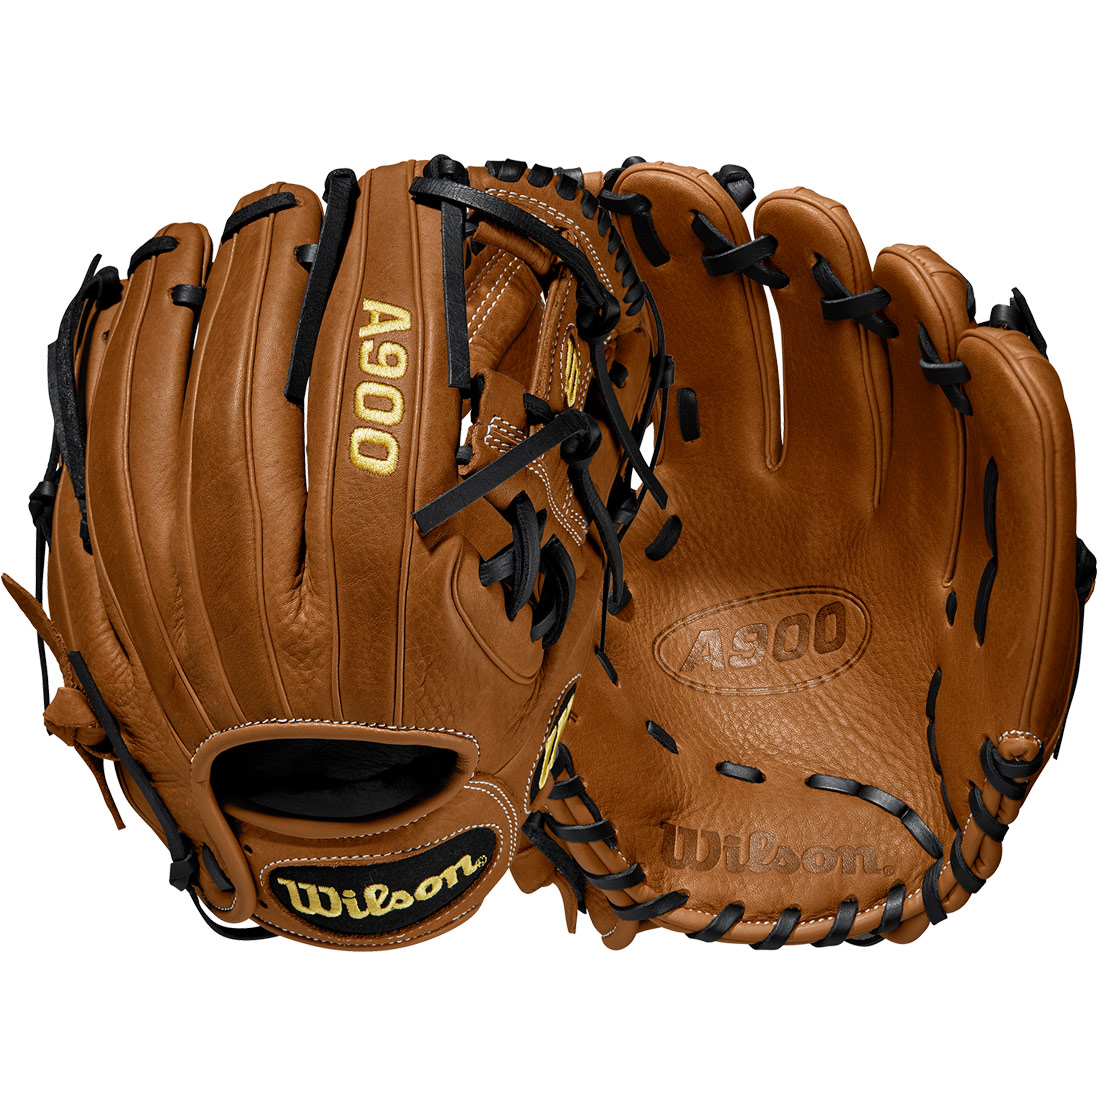 "Wilson A900 Pedroia Fit Baseball Glove 11.5"" WTA09RB20115PF"